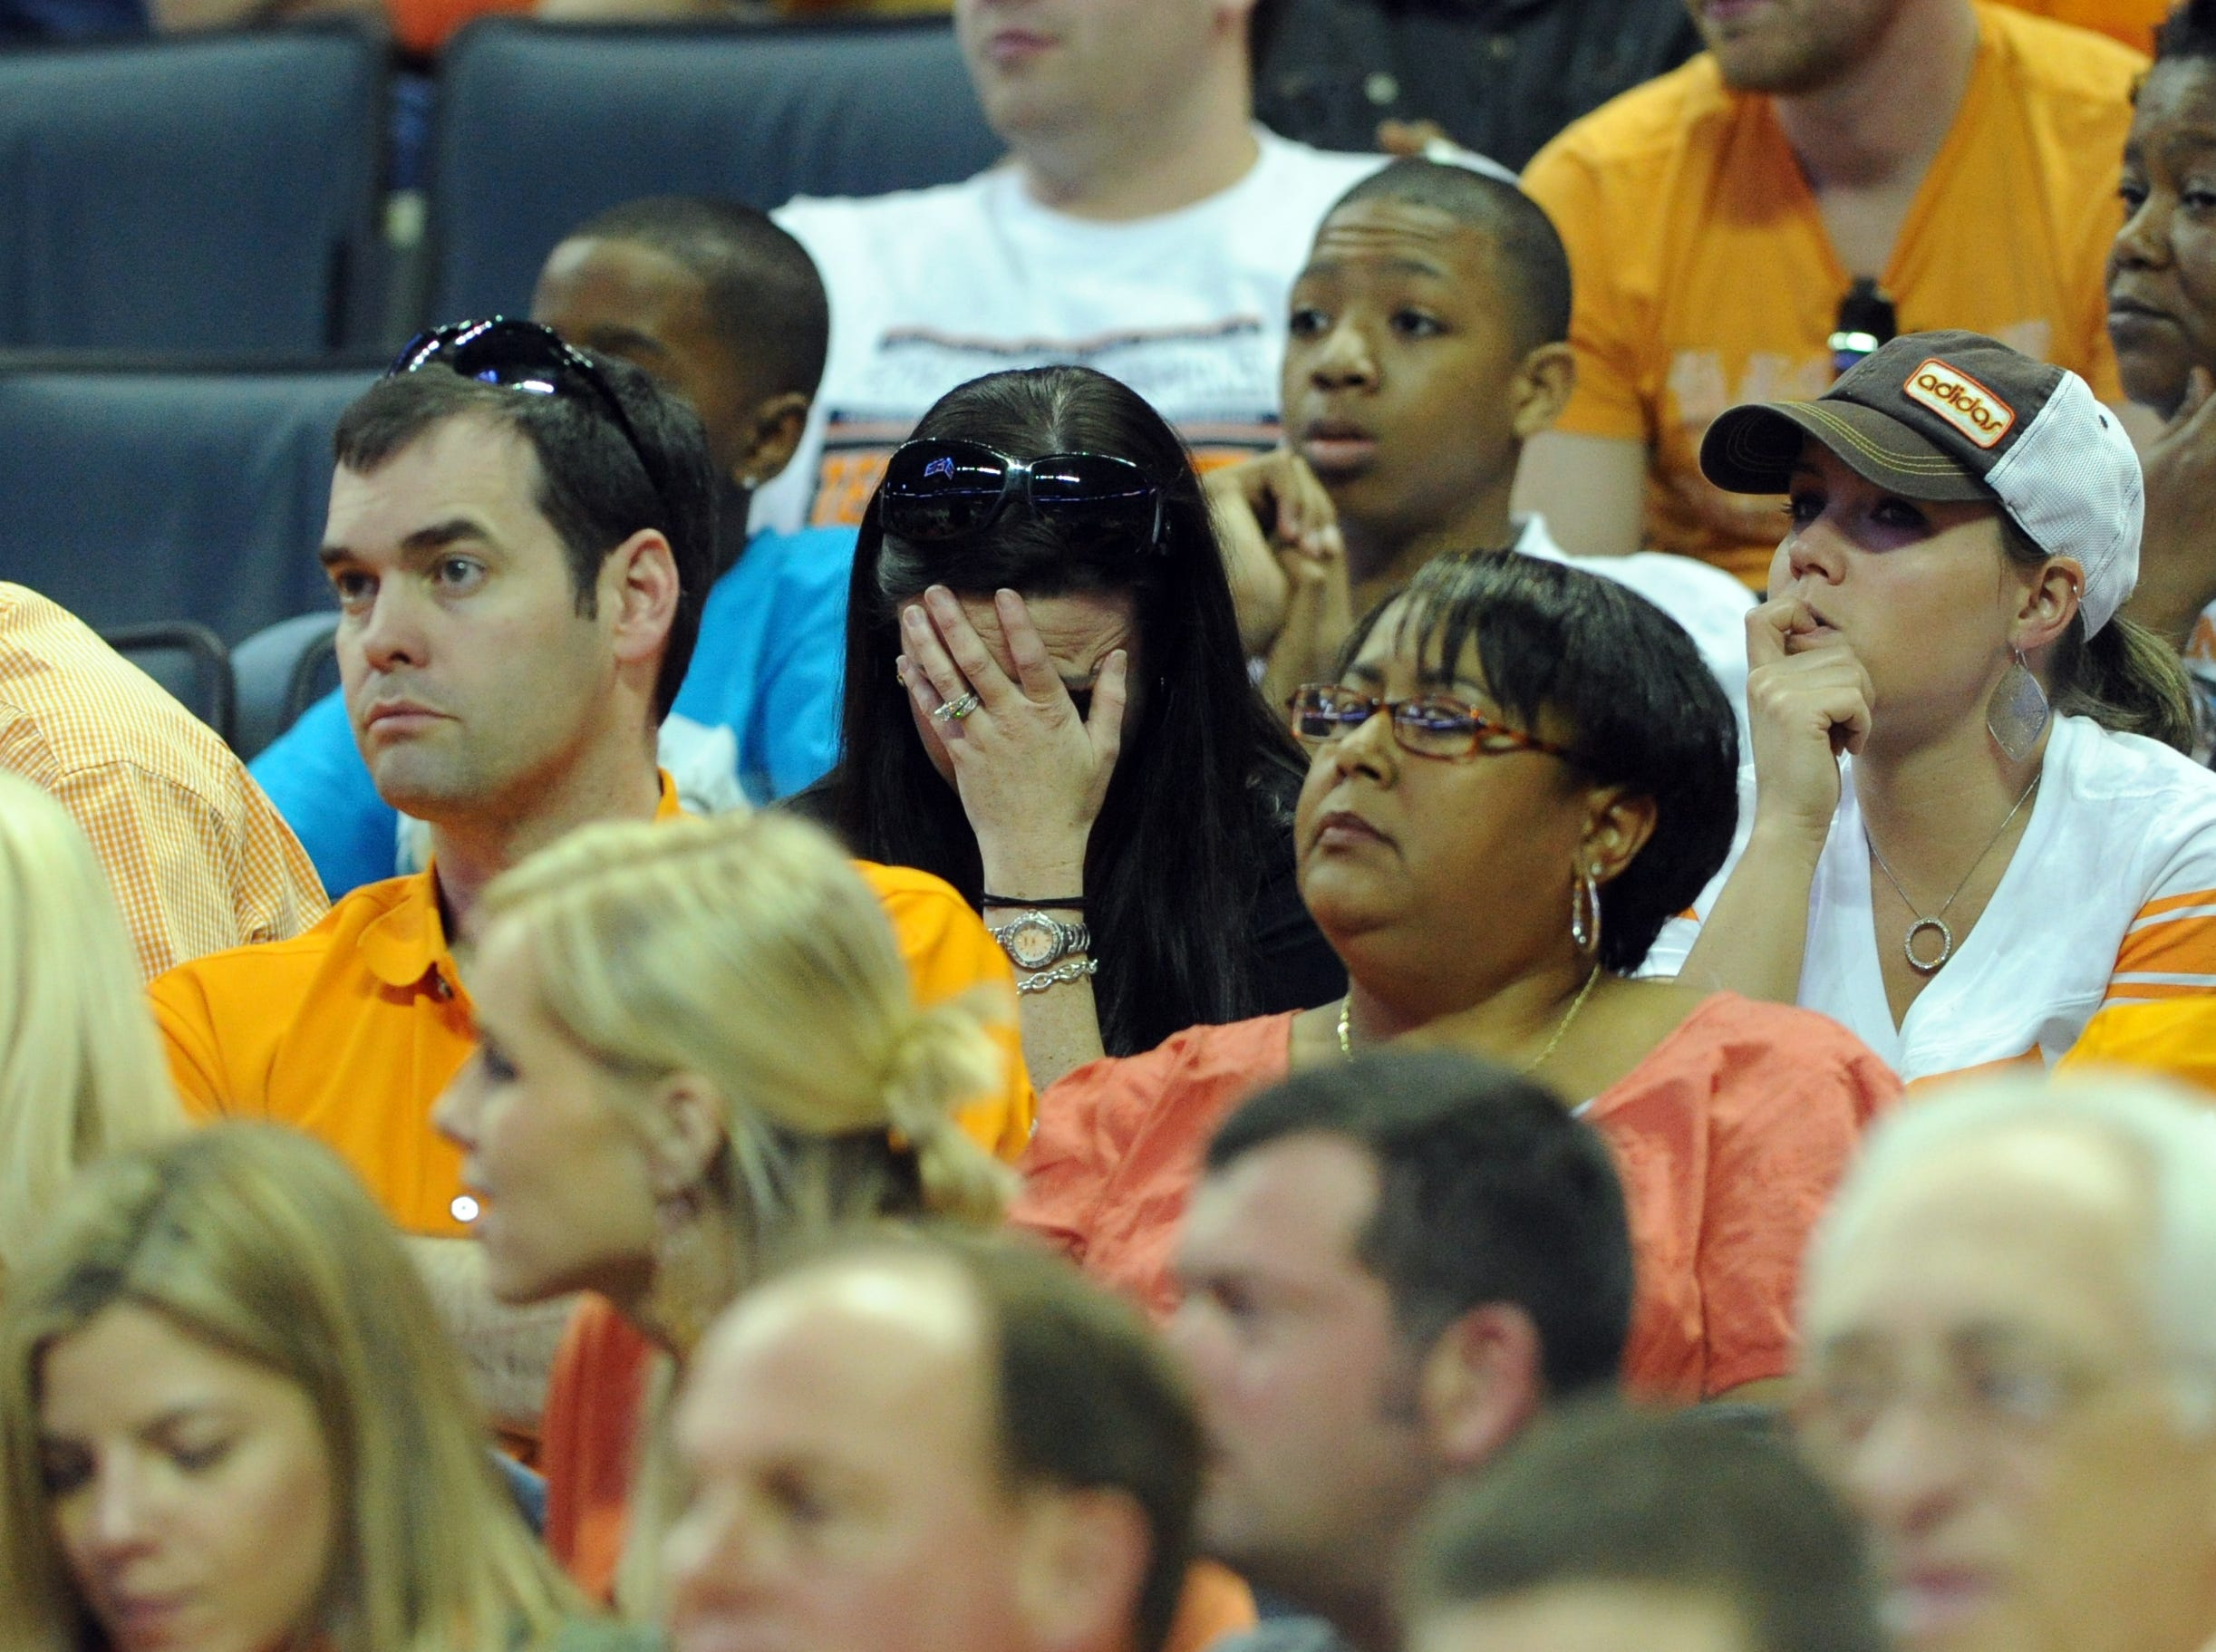 A Tennessee fan hangs her head as the Vols play the Michigan Wolverines during the second round of the NCAA Tournament at Time Warner Cable Arena in Charlotte, N.C. Friday, March 18, 2011.  The Wolverines defeated the Vols 75-45 knocking them out of the tournament.